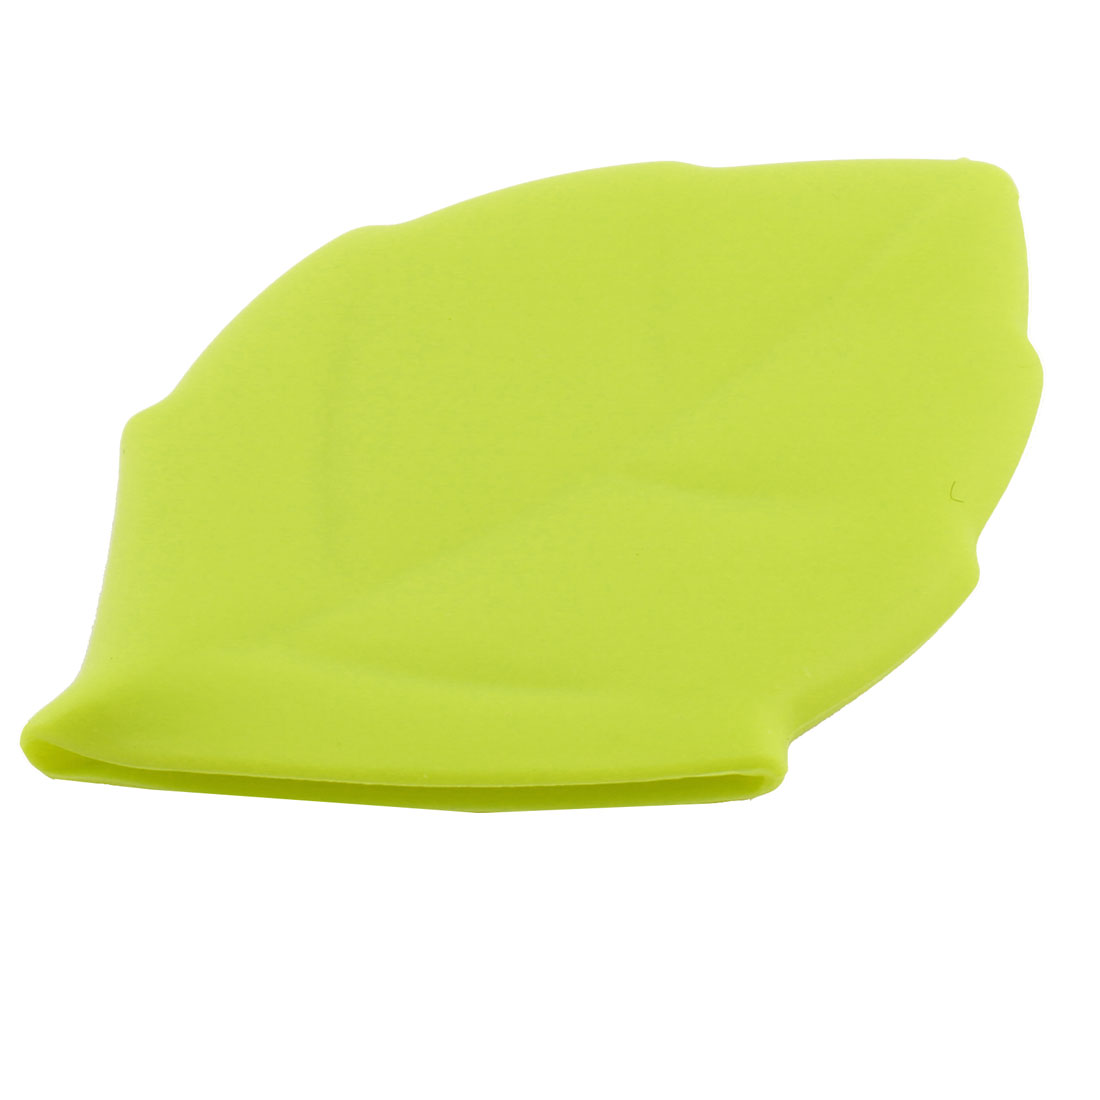 Outdoor Camping Maple Leaf Shape Portable Foldable Rinse Water Cup Silicone Cup Green